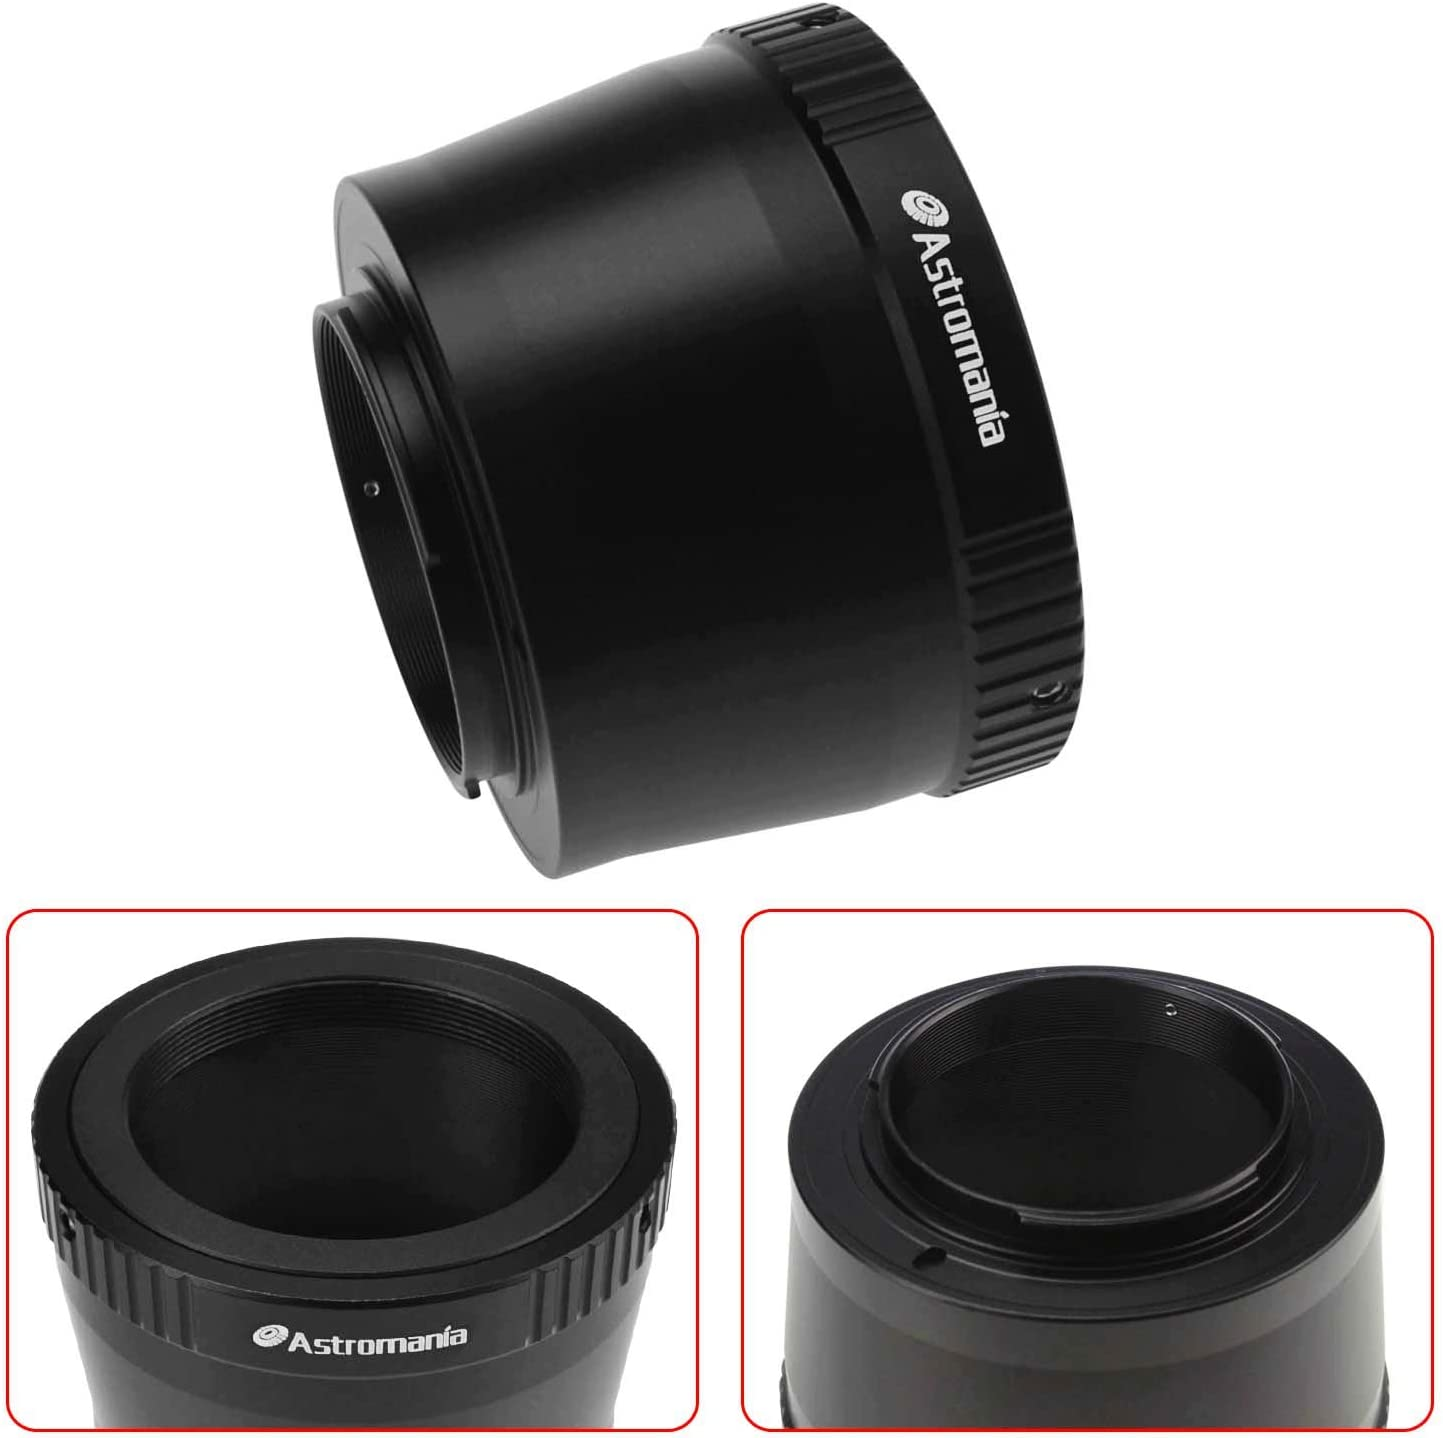 for Sony-NEX Camera T-Mount Precision machined T2 Adaptor Ring for All Sony NEX Compact System Cameras Astromania T//T2 Lens Mount Adapter Ring and M42 to 1.25 Telescope Adapter